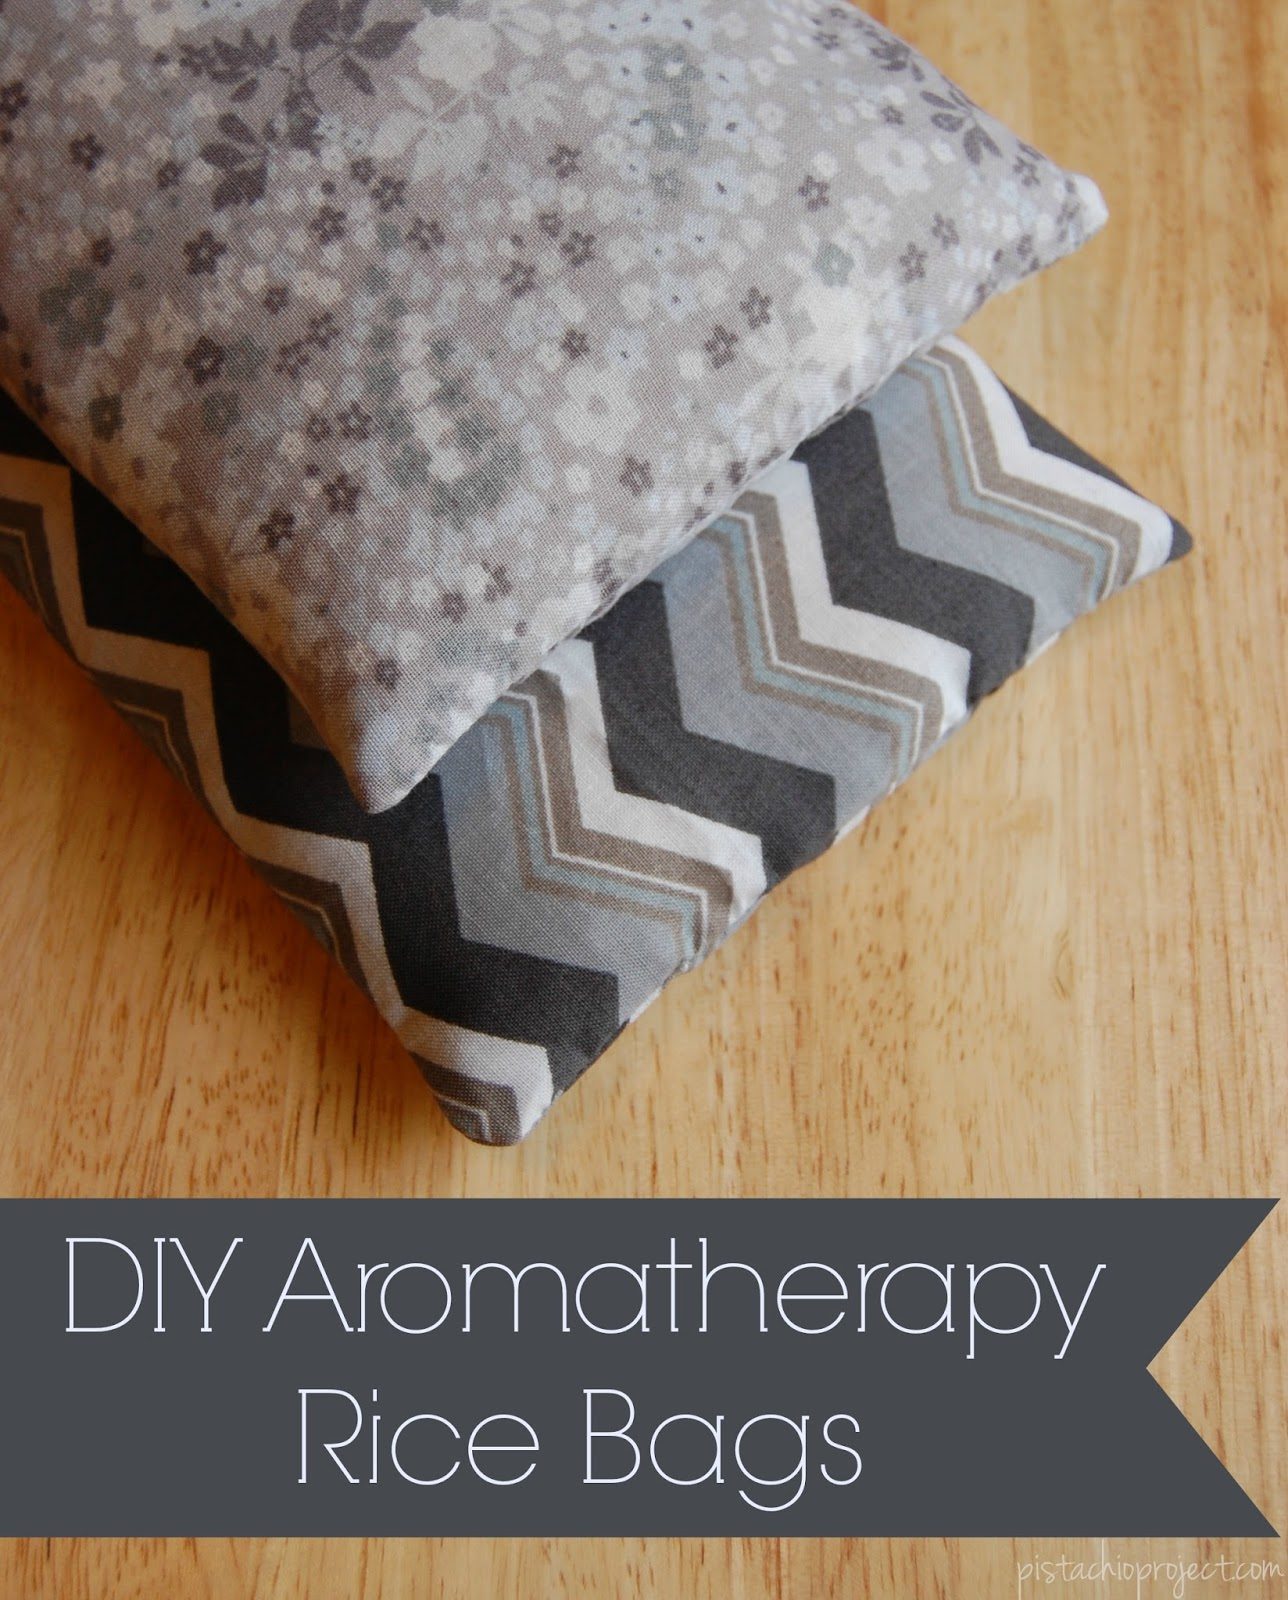 DIY Aromatherapy Rice Bag - DIY Aromatherapy Rice Bag - I adore my rice bag! Great for sore muscles, growing pains, or when you just need to warm up a bit!